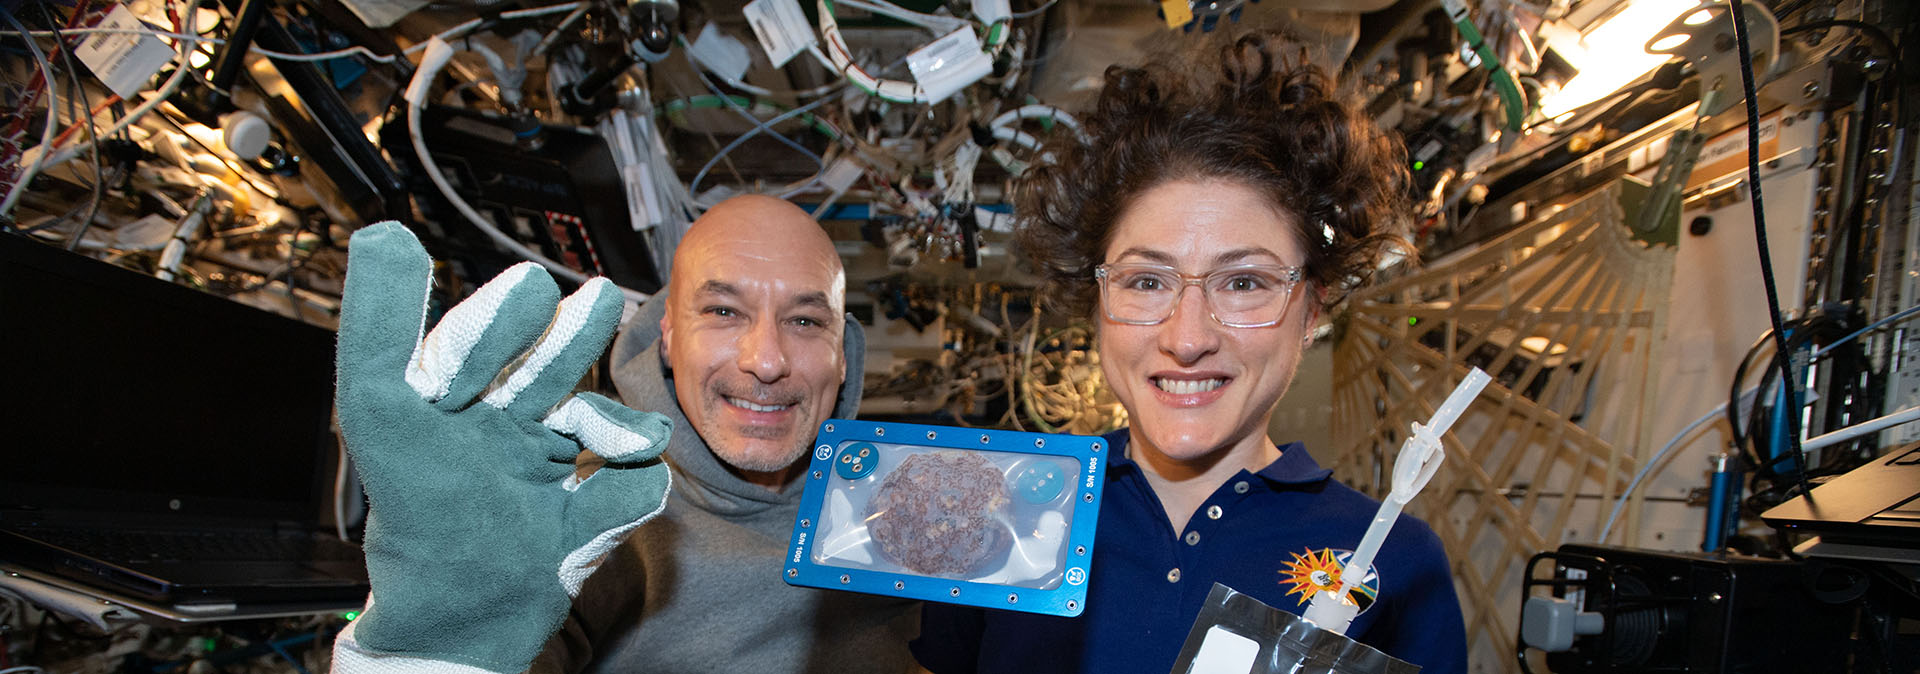 DoubleTree cookie baked on the ISS